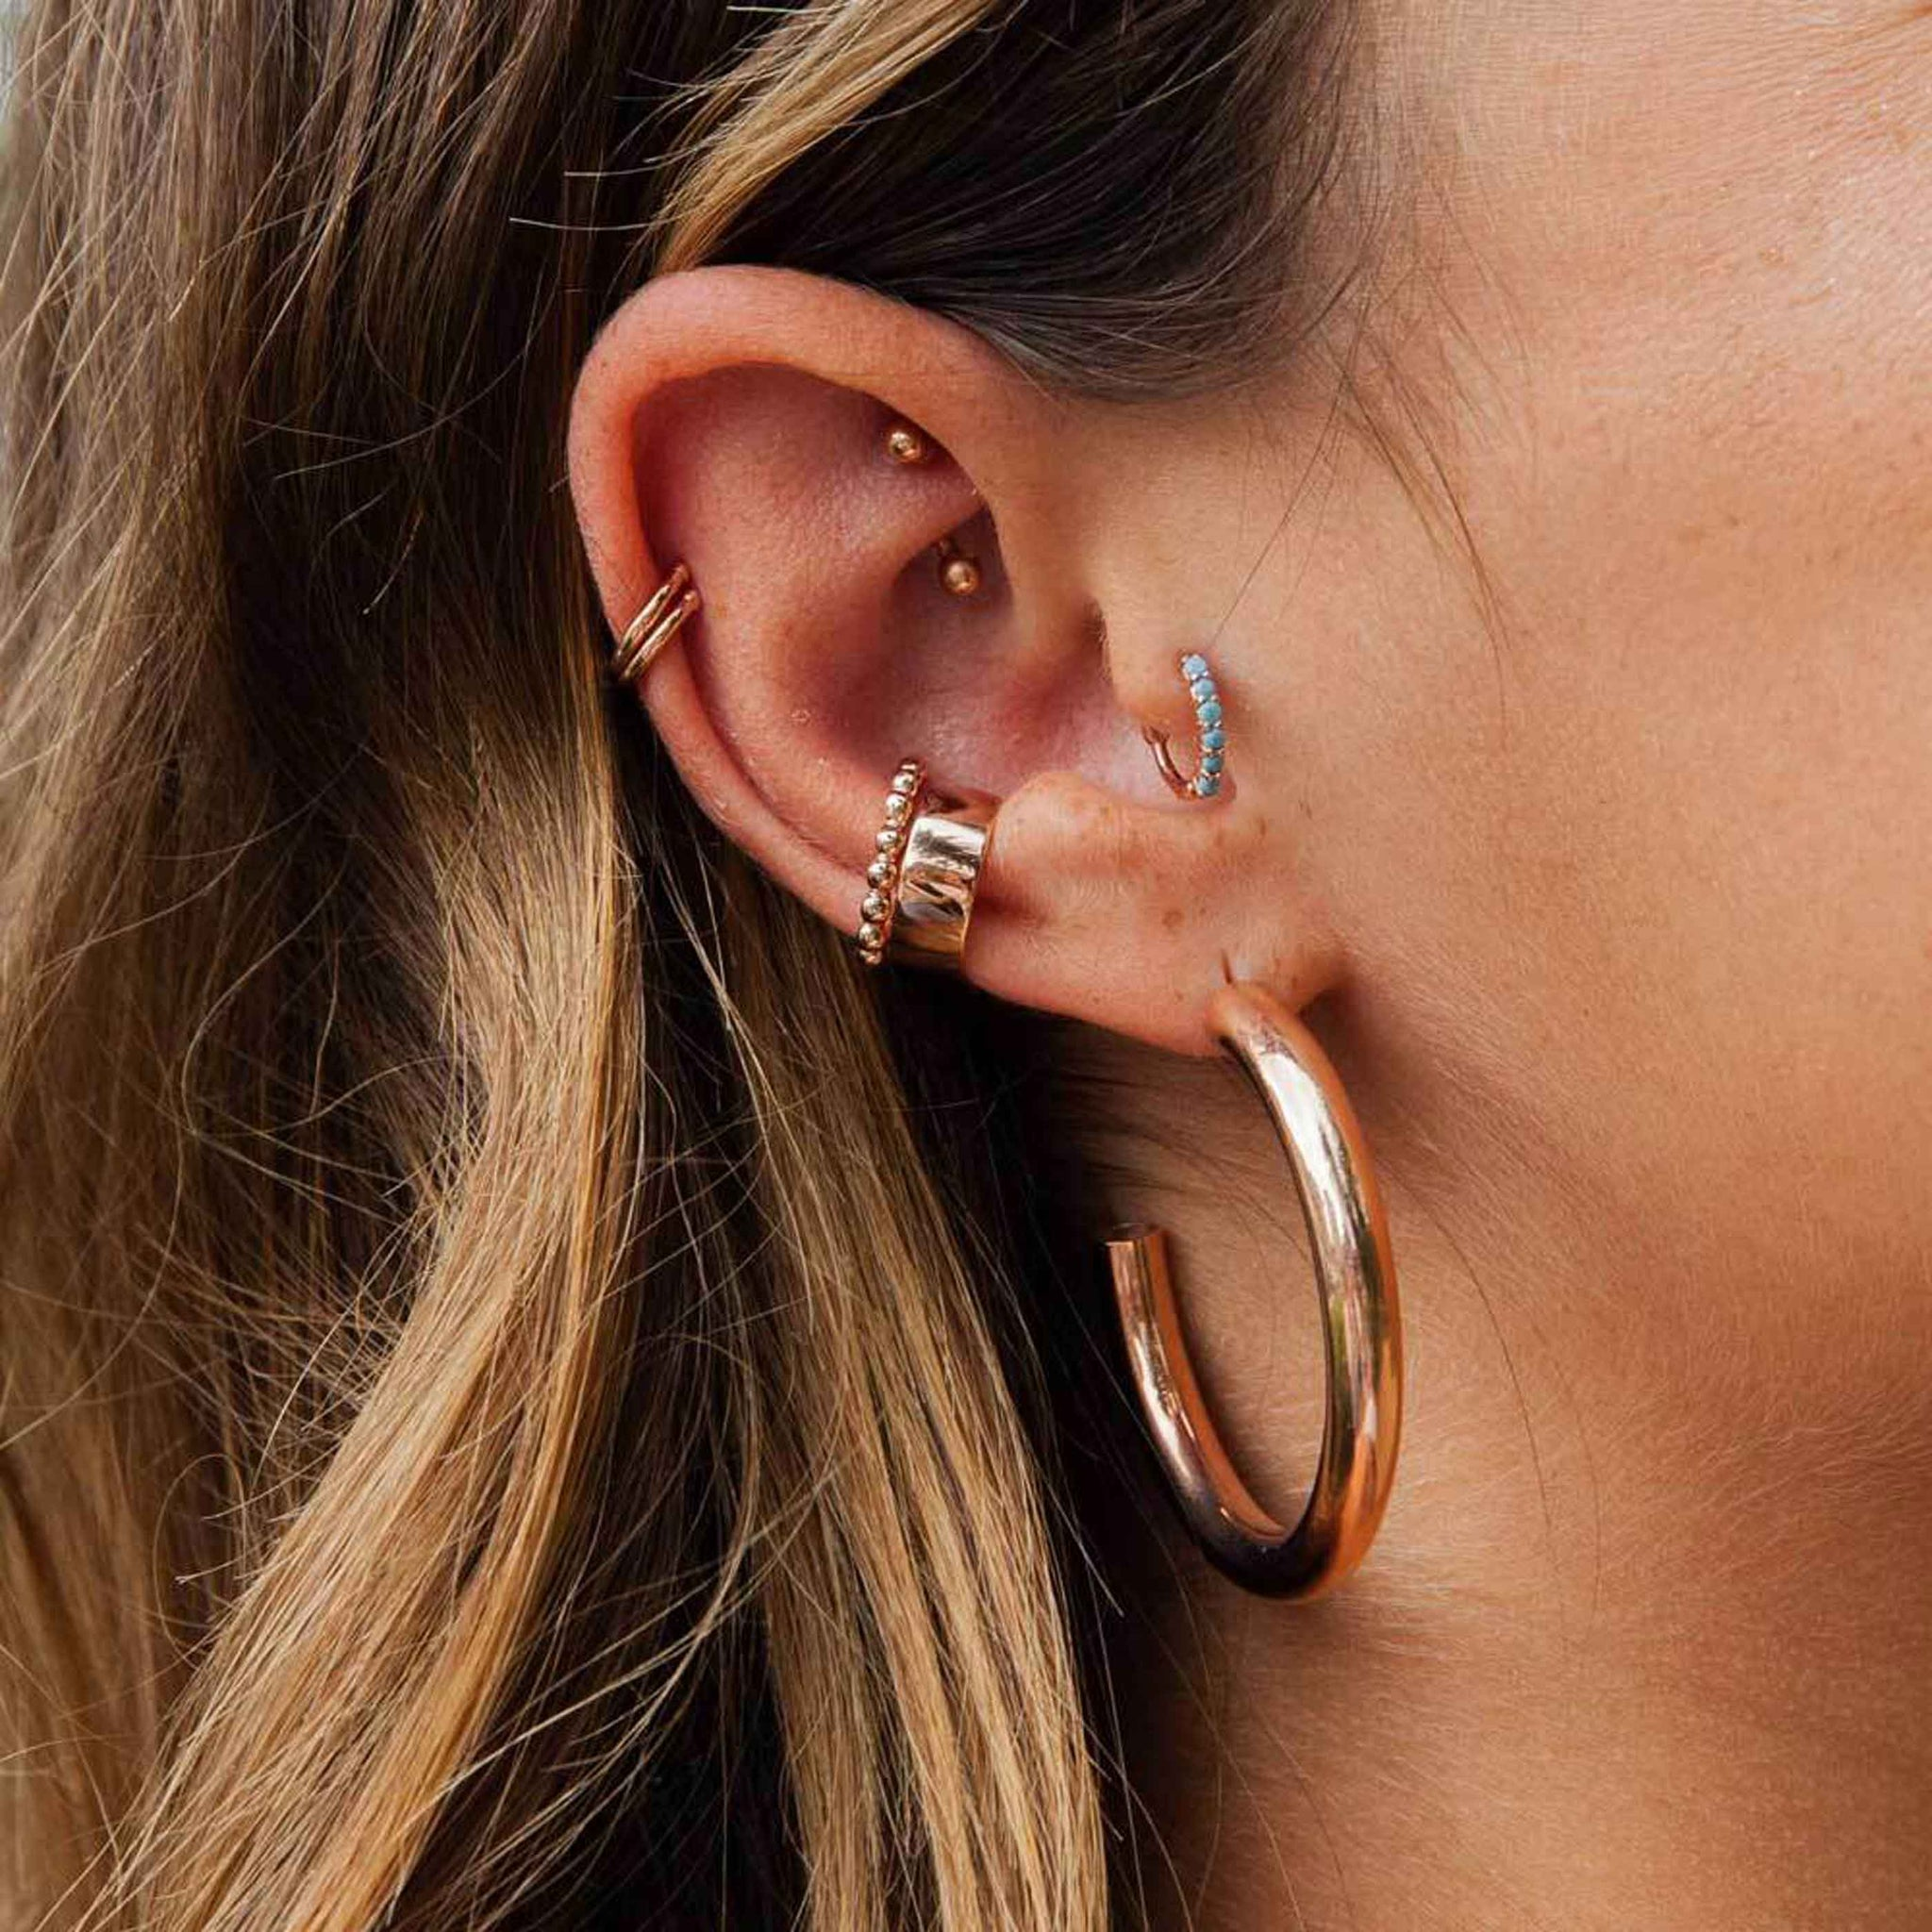 Basic Large Hoop Earrings in Rose Gold worn with ear cuffs